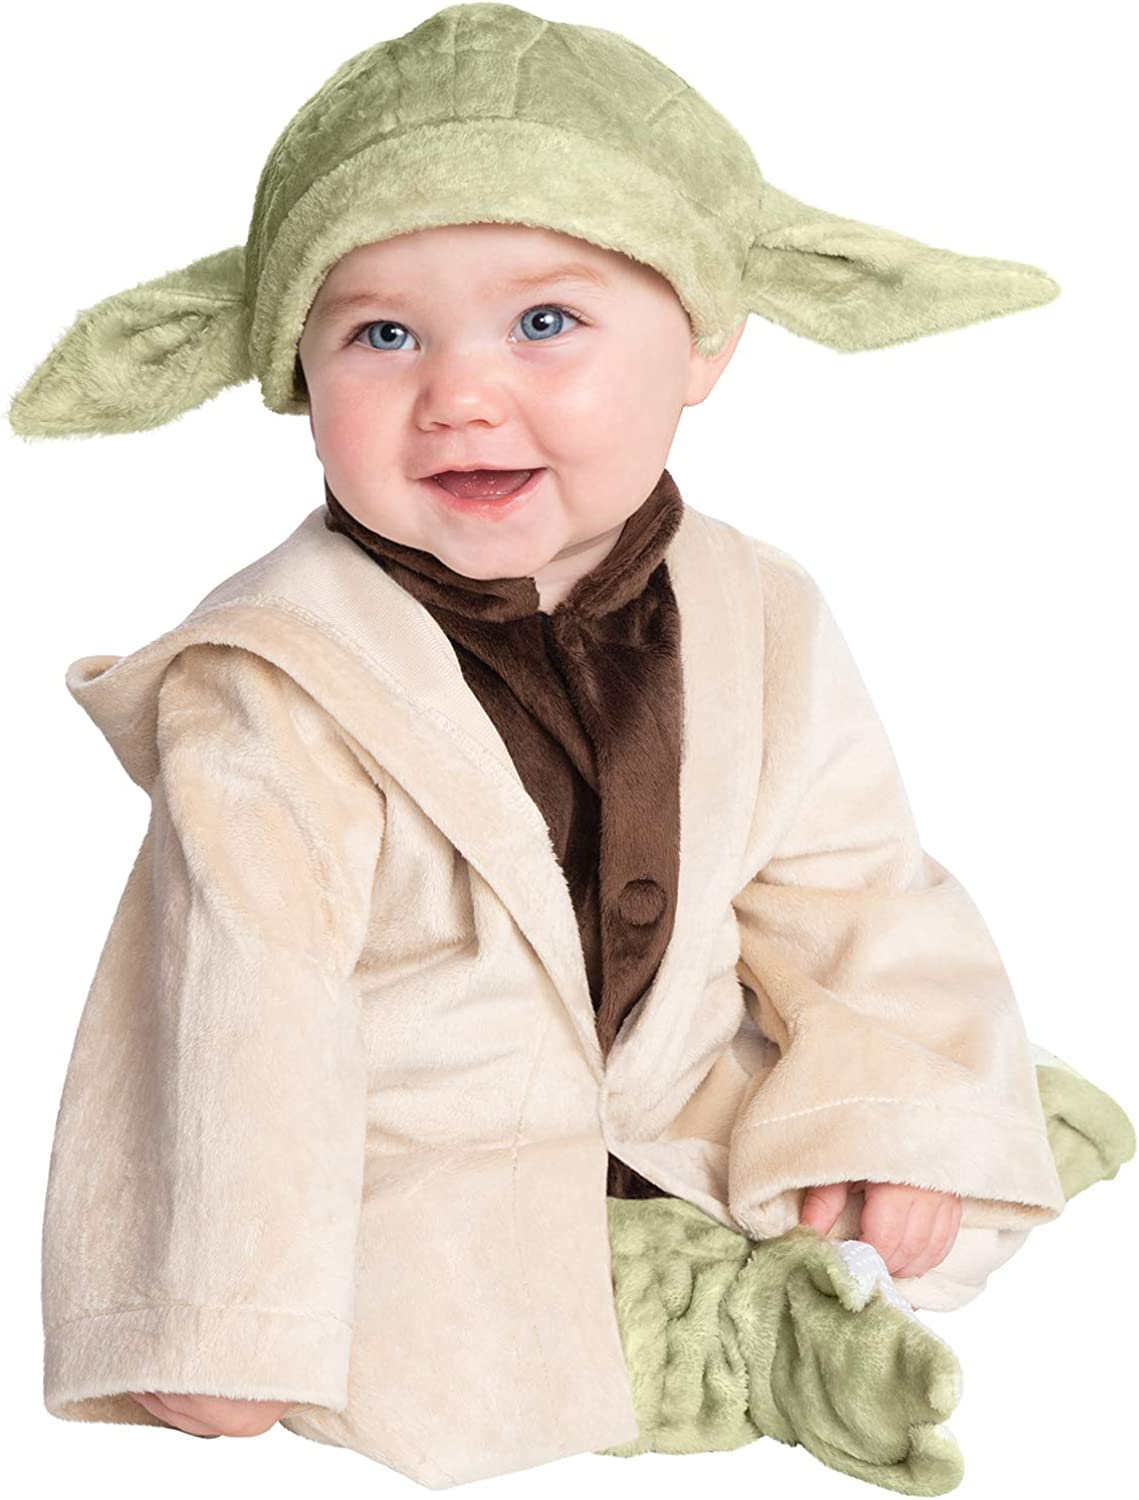 Rubies Baby Star Wars Classic Yoda Deluxe Plush Costume As Shown 2T